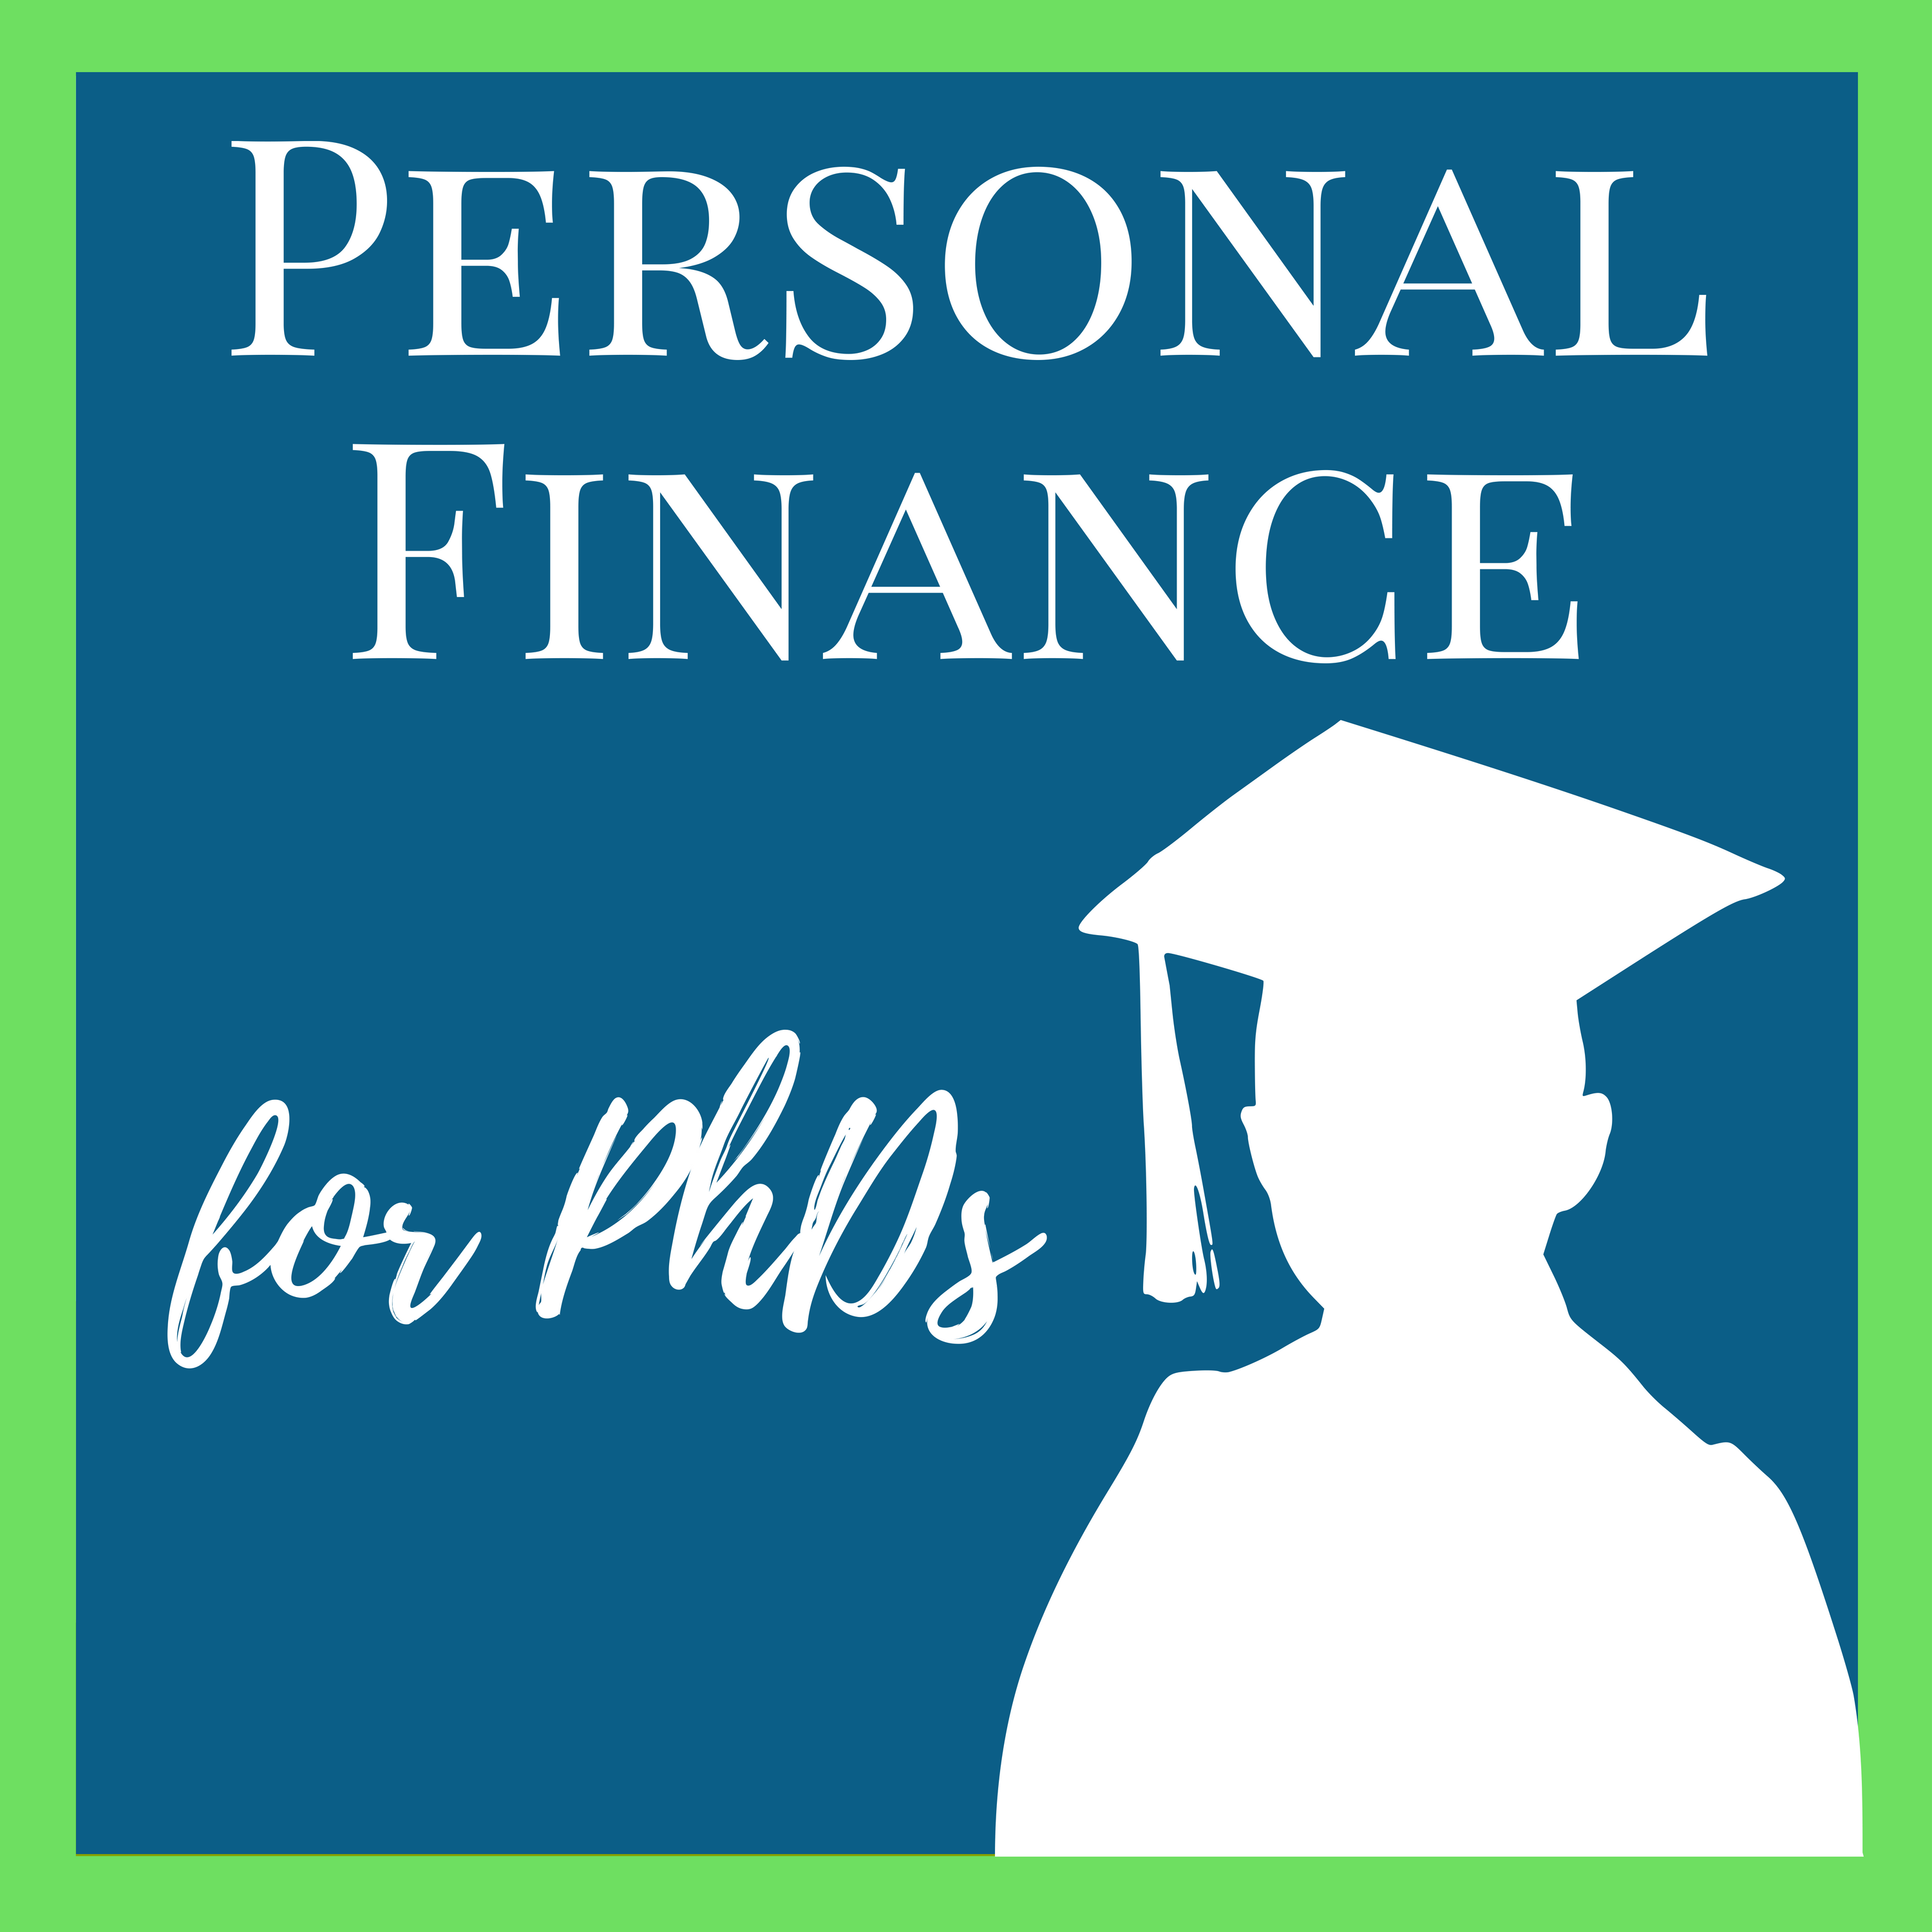 student loans Archives - Personal Finance for PhDs